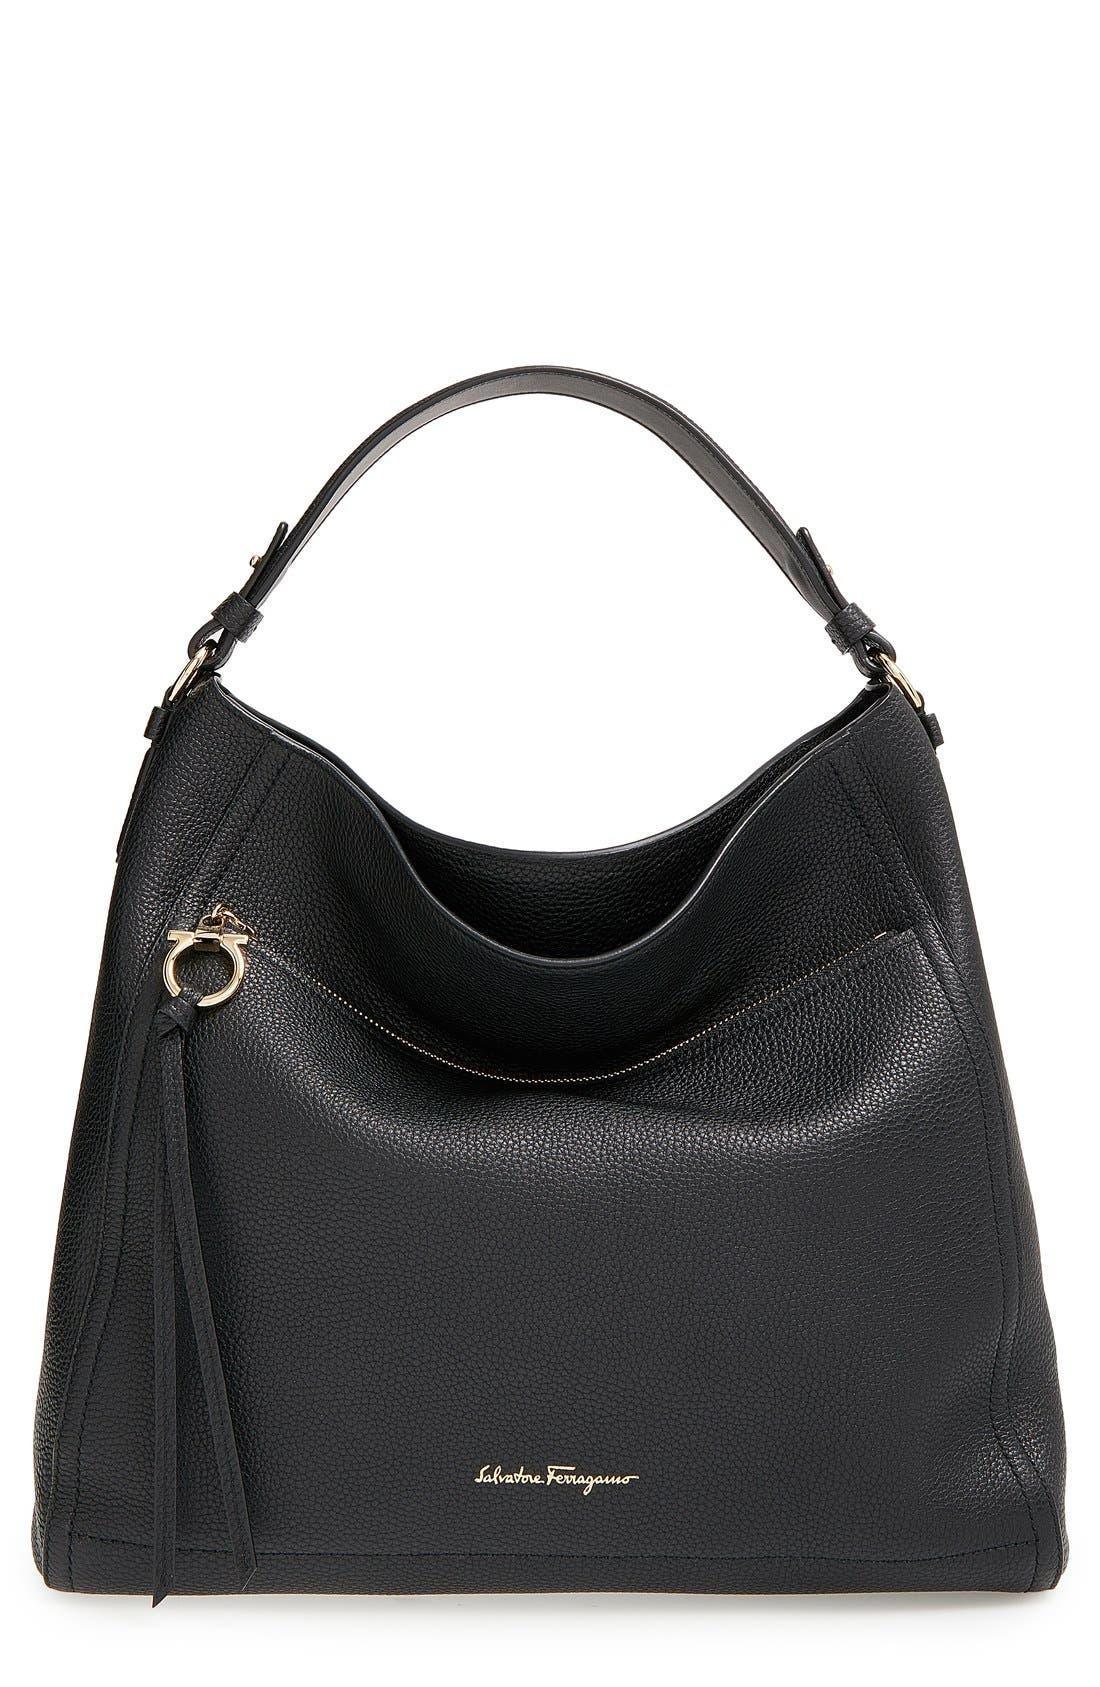 Alternate Image 1 Selected - Salvatore Ferragamo Pebbled Leather Hobo